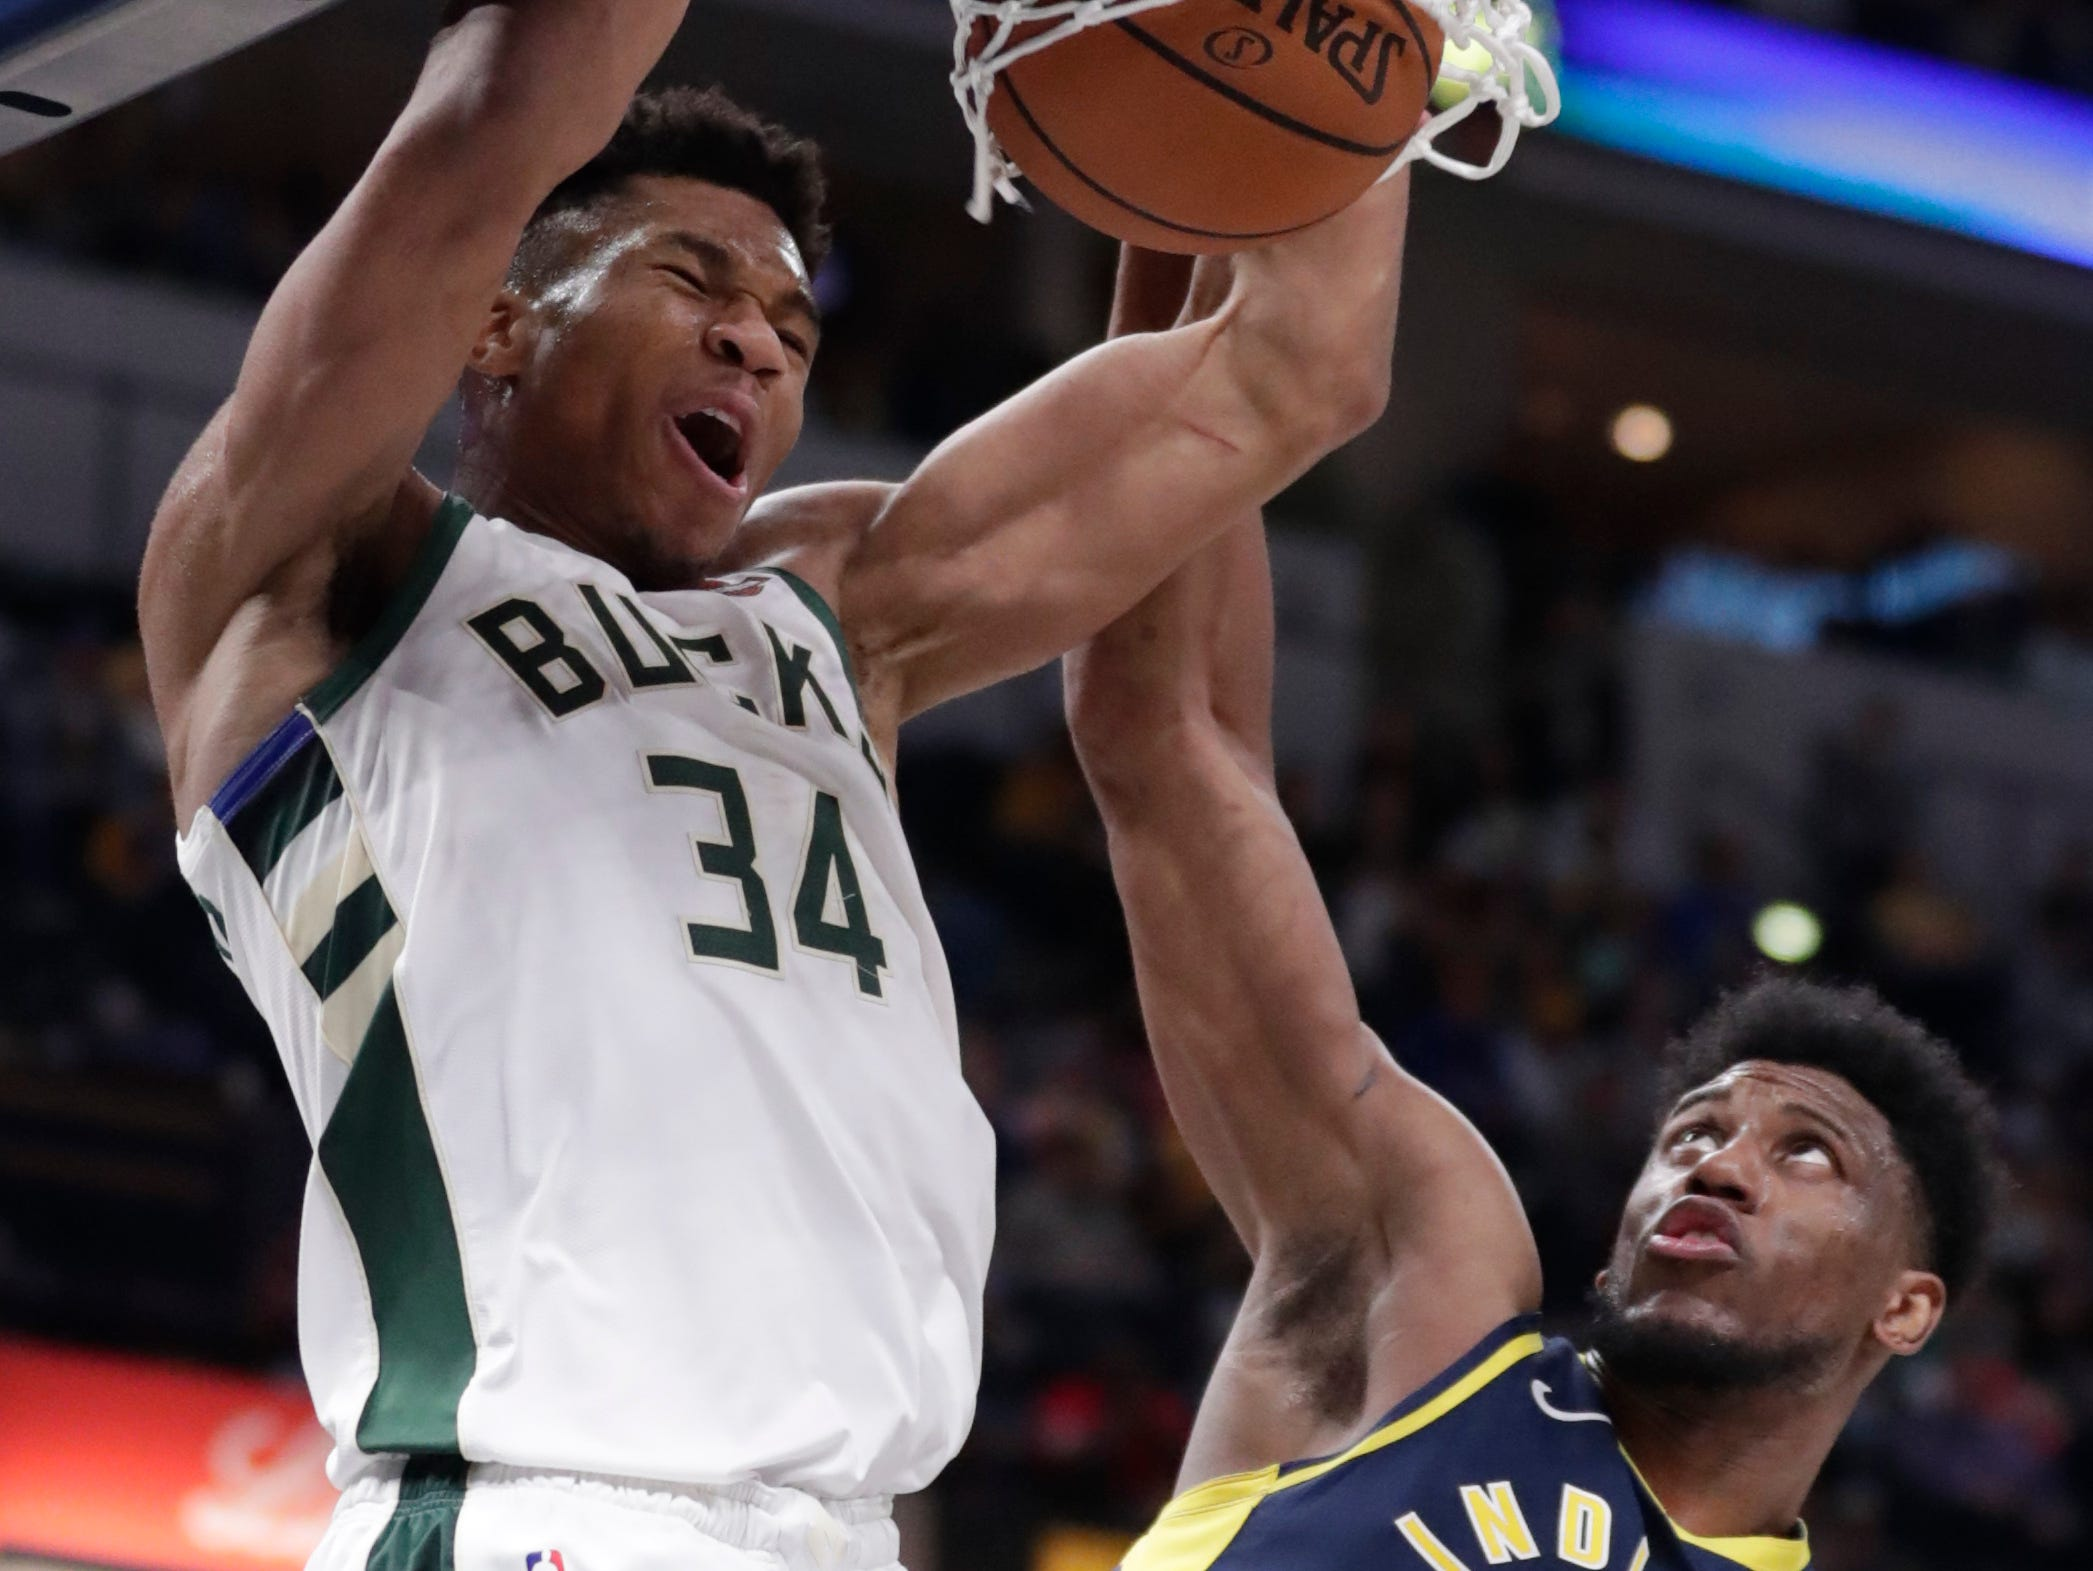 Bucks forward Giannis Antetokounmpo had his way against Thaddeus Young or whoever else the Pacers threw at him on Wednesday as the all-star captain finished with 33 points, 19 rebounds and 11 assists.